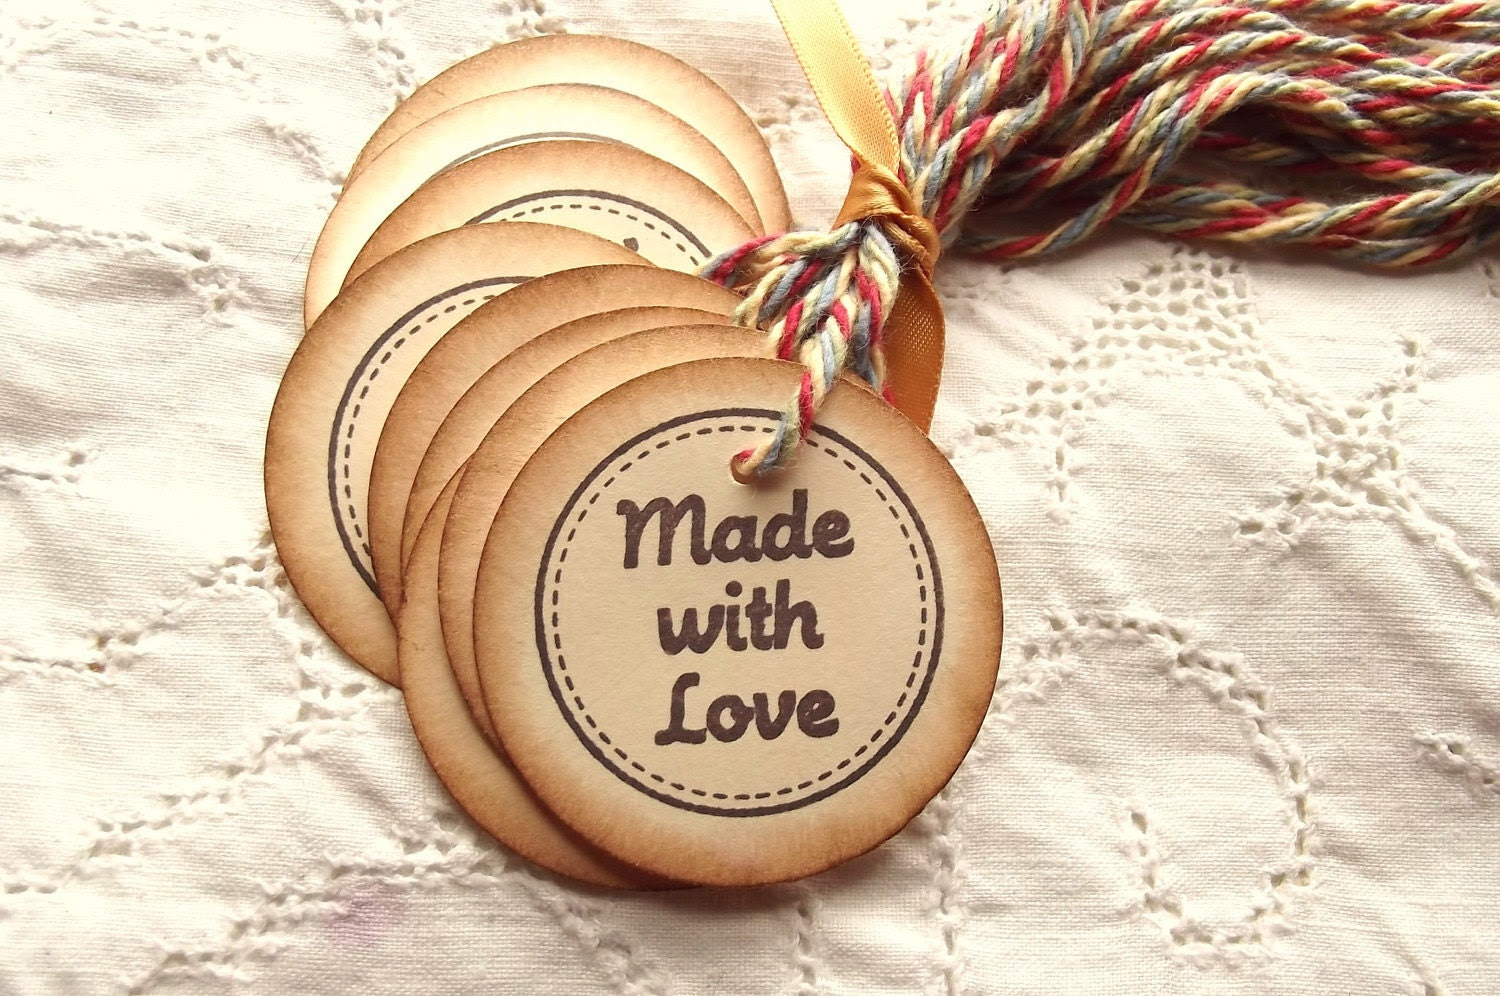 Made with Love Circle Hang Tags - Stitched Border, Colorful Cotton Twine, Brown, Vintage Feel 12